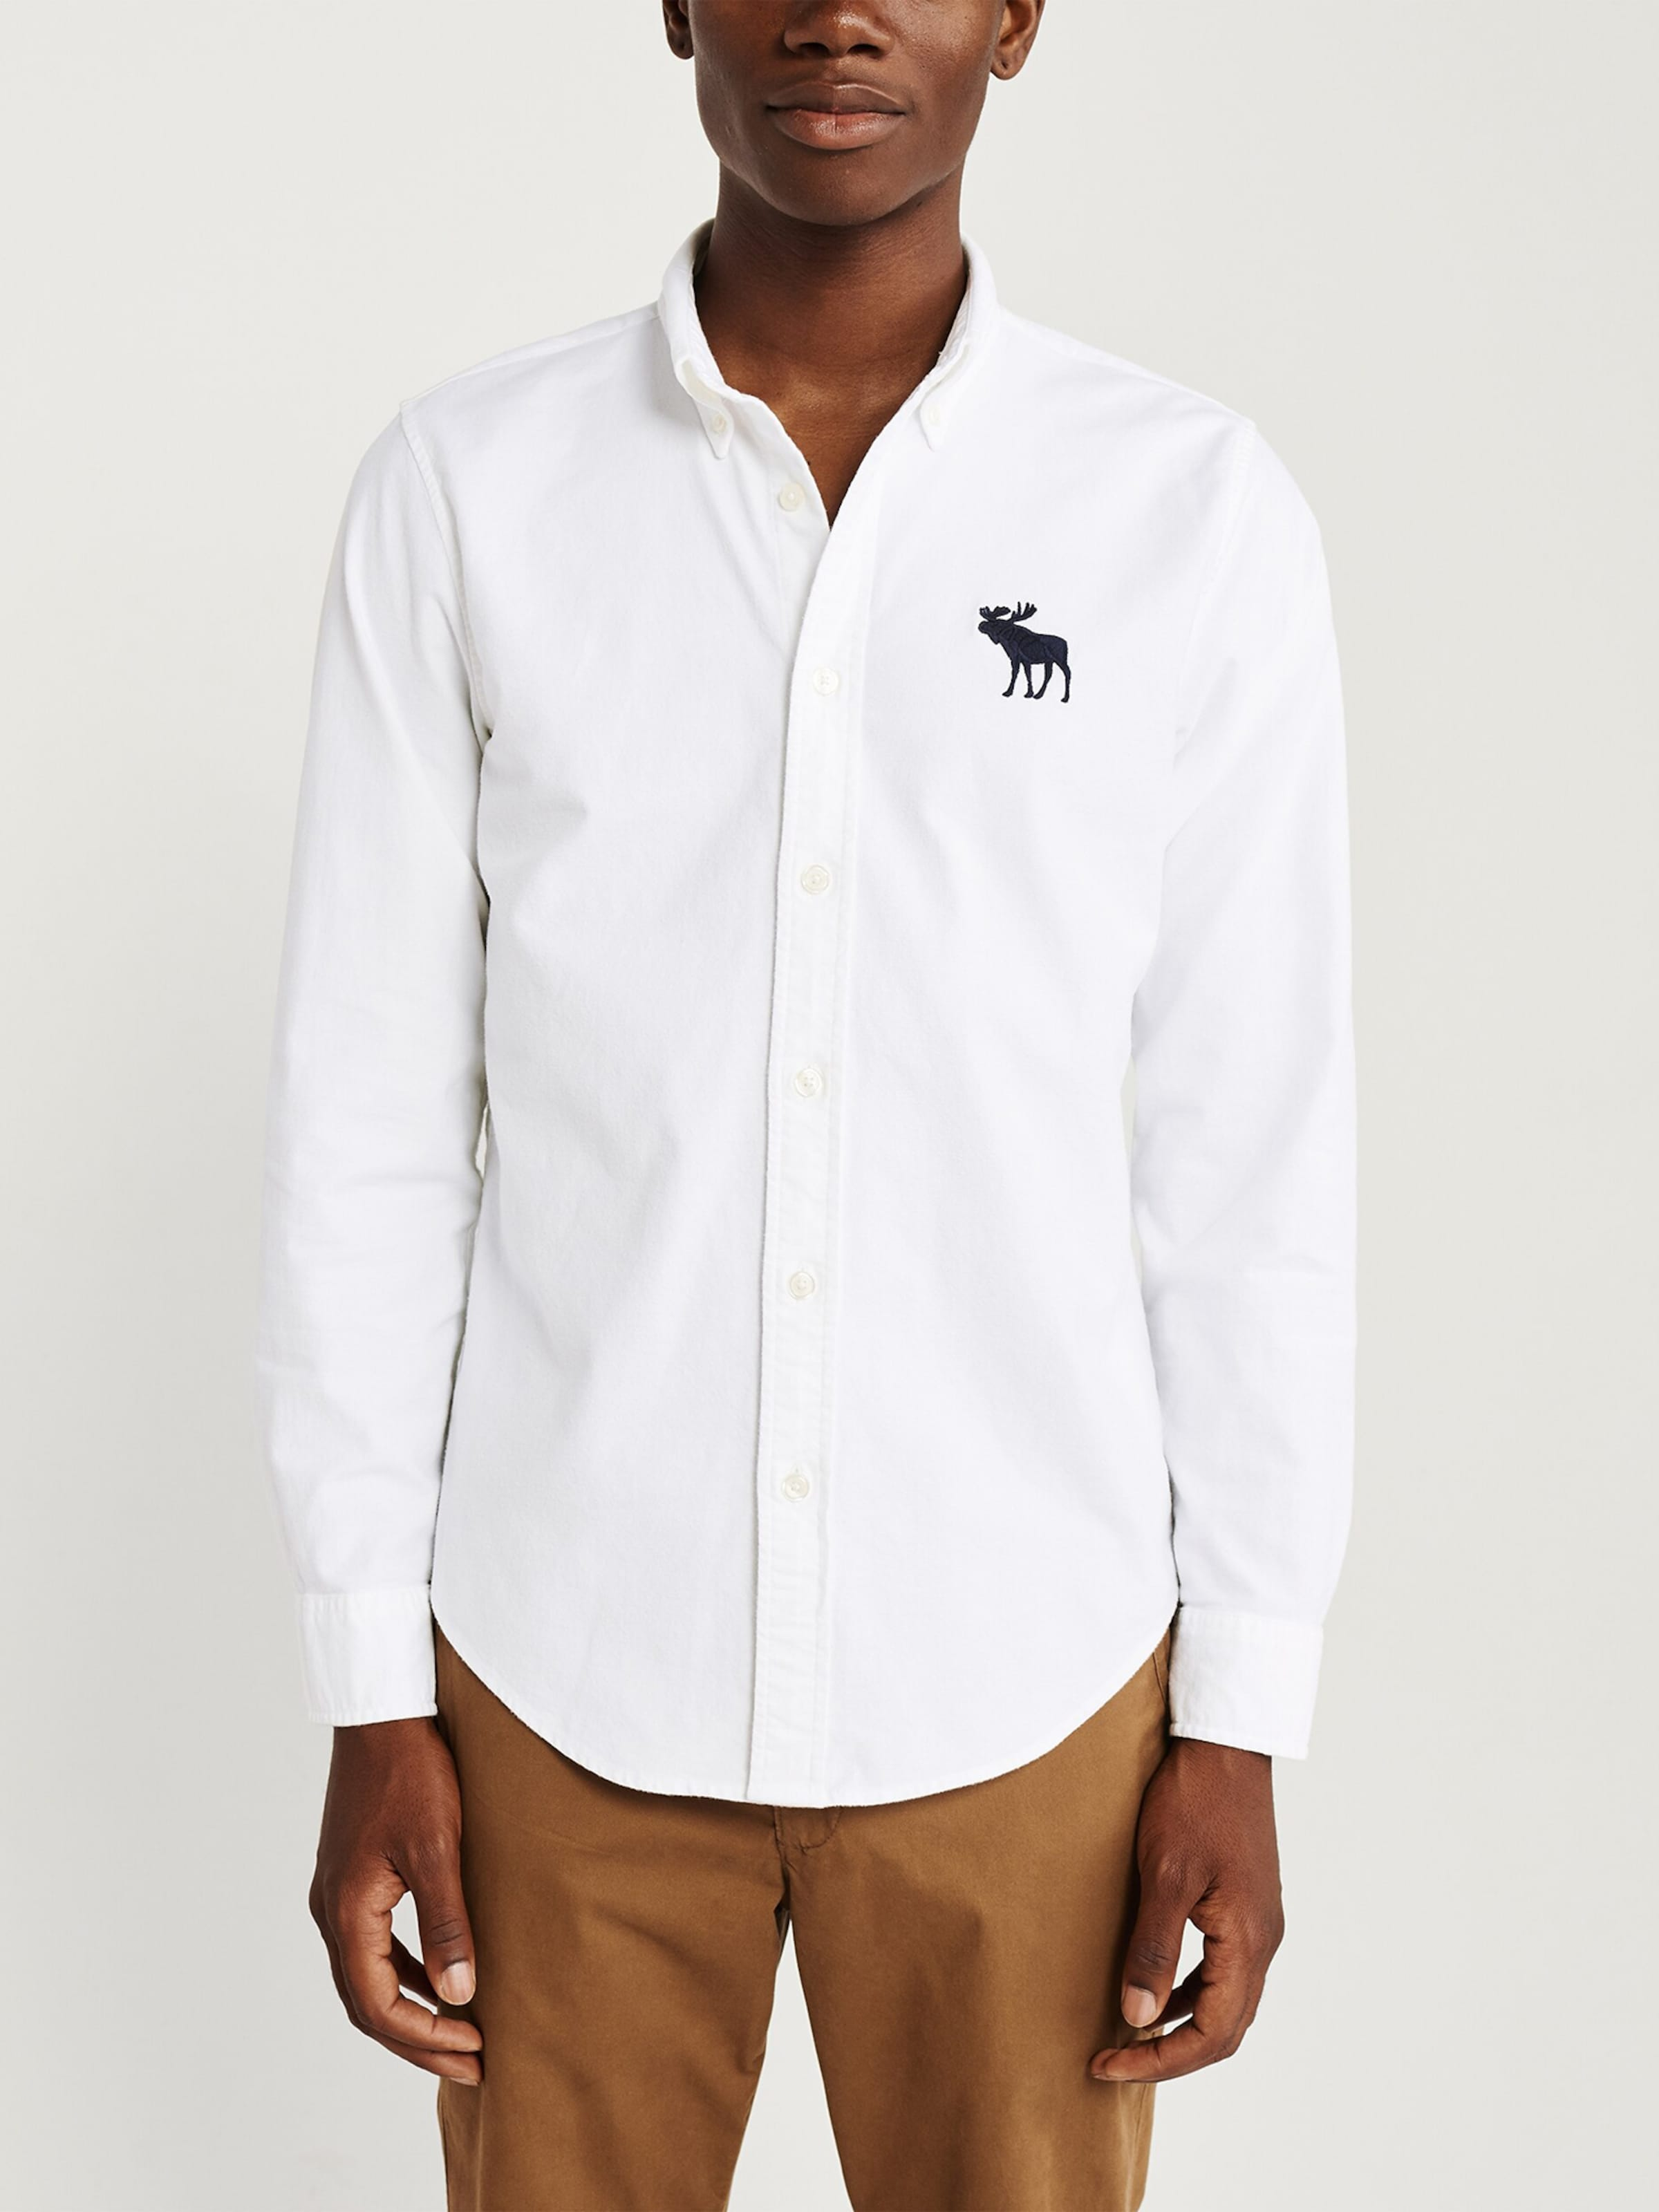 Chemise Blanc Fitch Fitch Chemise Abercrombieamp; En En Blanc Abercrombieamp; Fitch Abercrombieamp; hQsrCdt